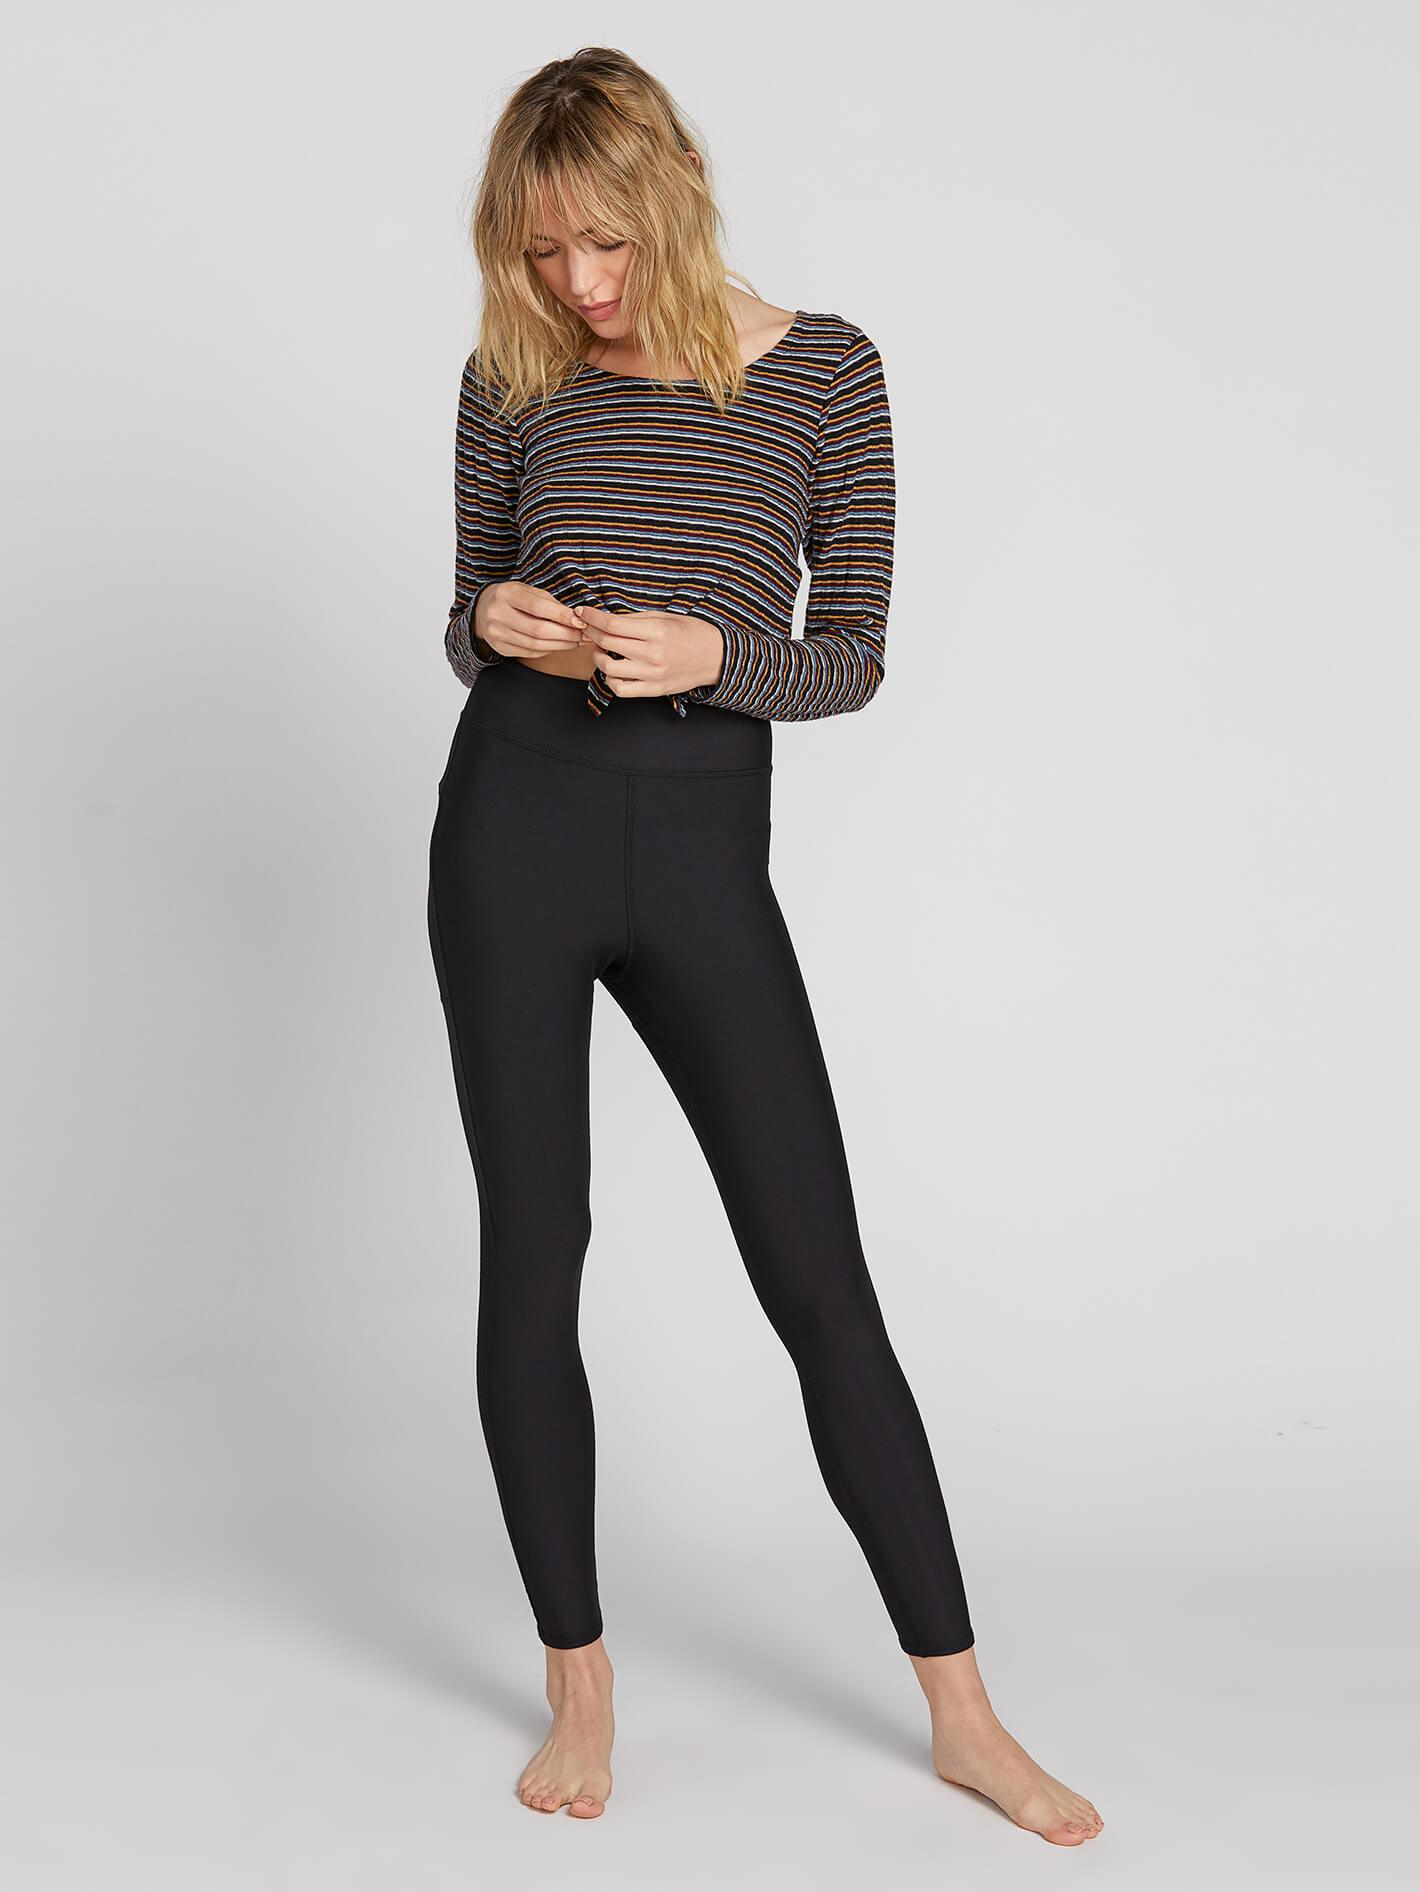 Volcom LiL Mesh Leggings - 88 Gear